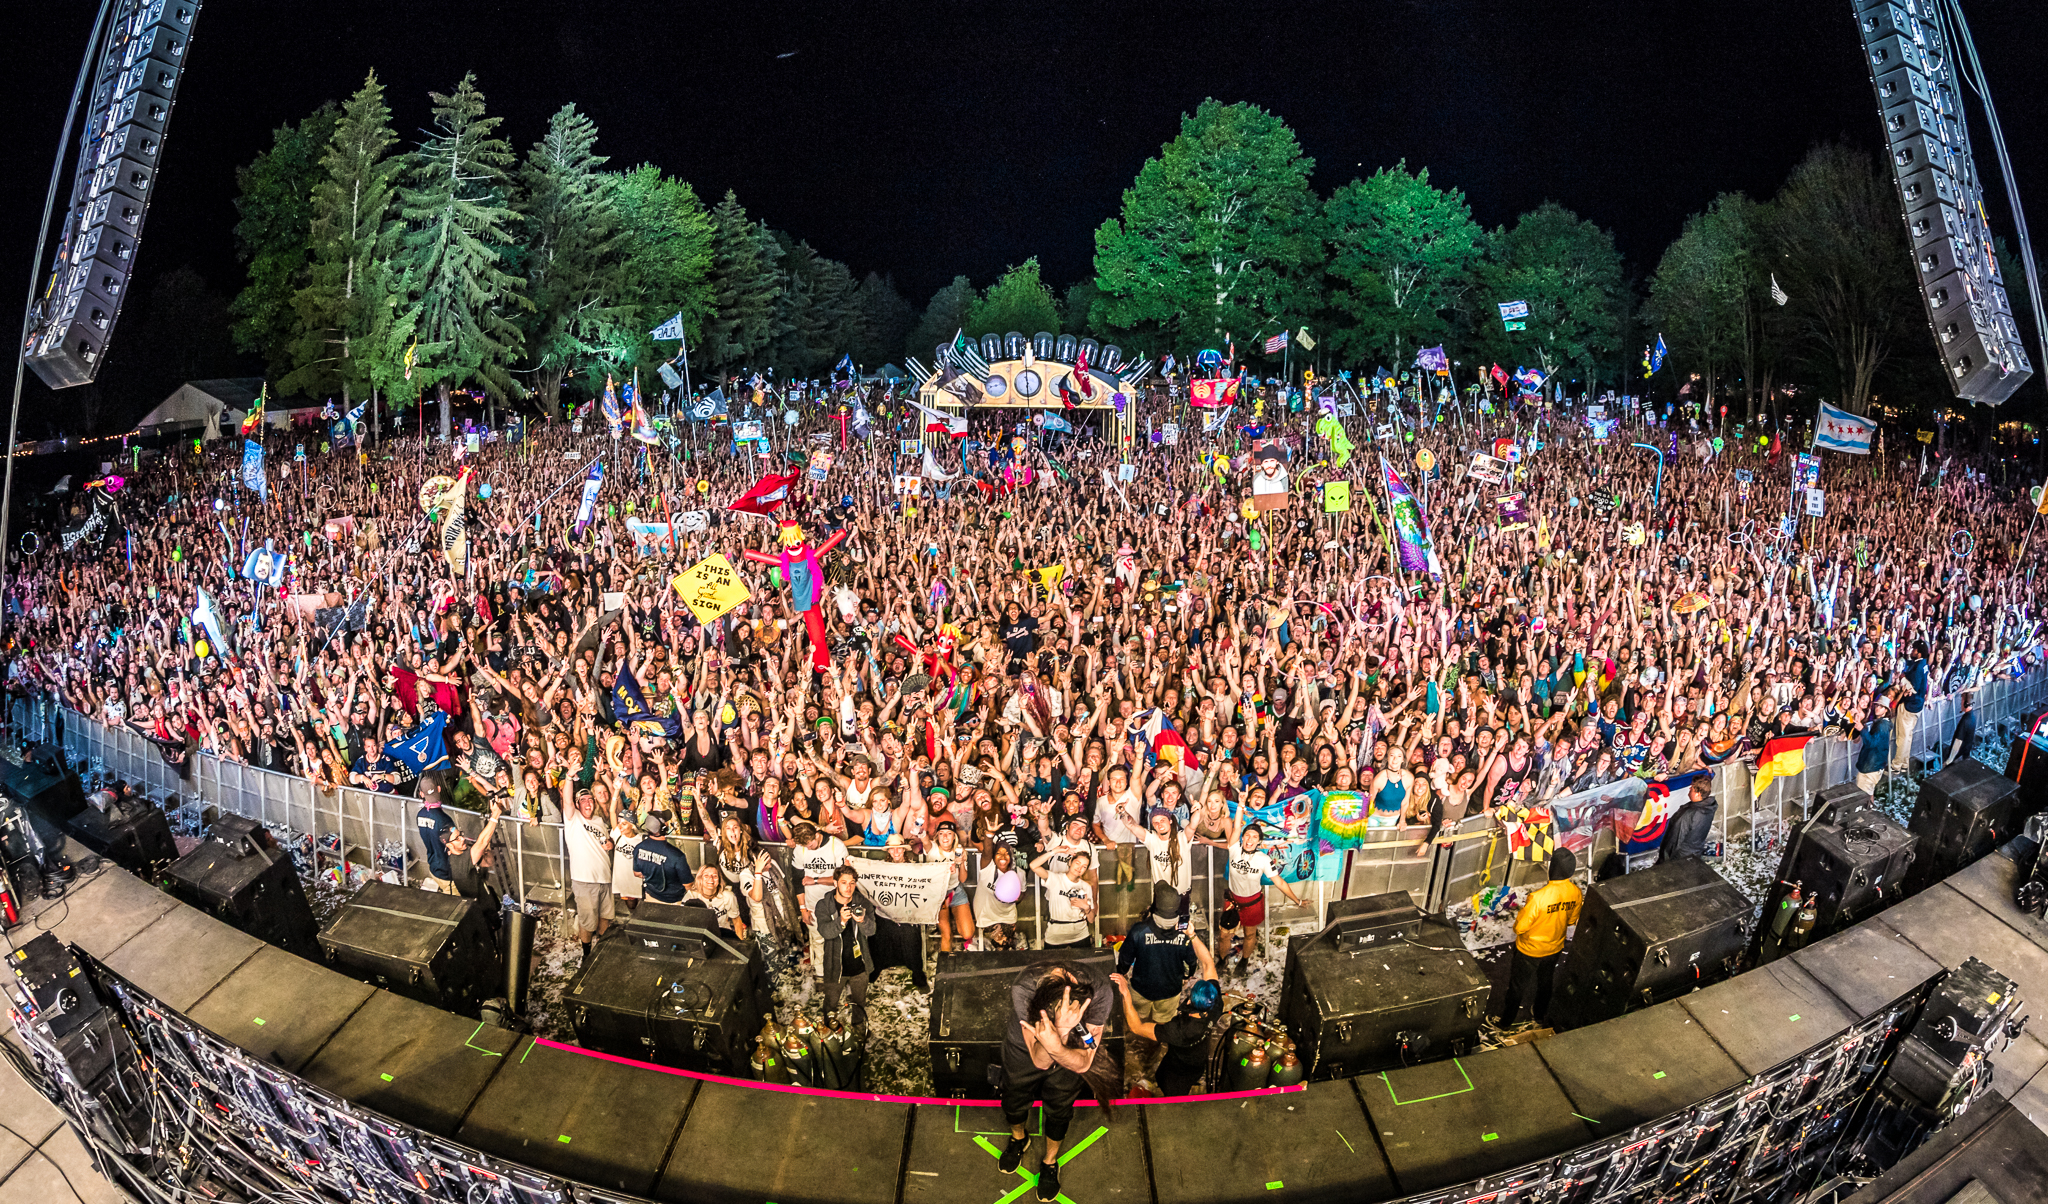 ELECTRIC FOREST 2017 FAMILY PHOTO